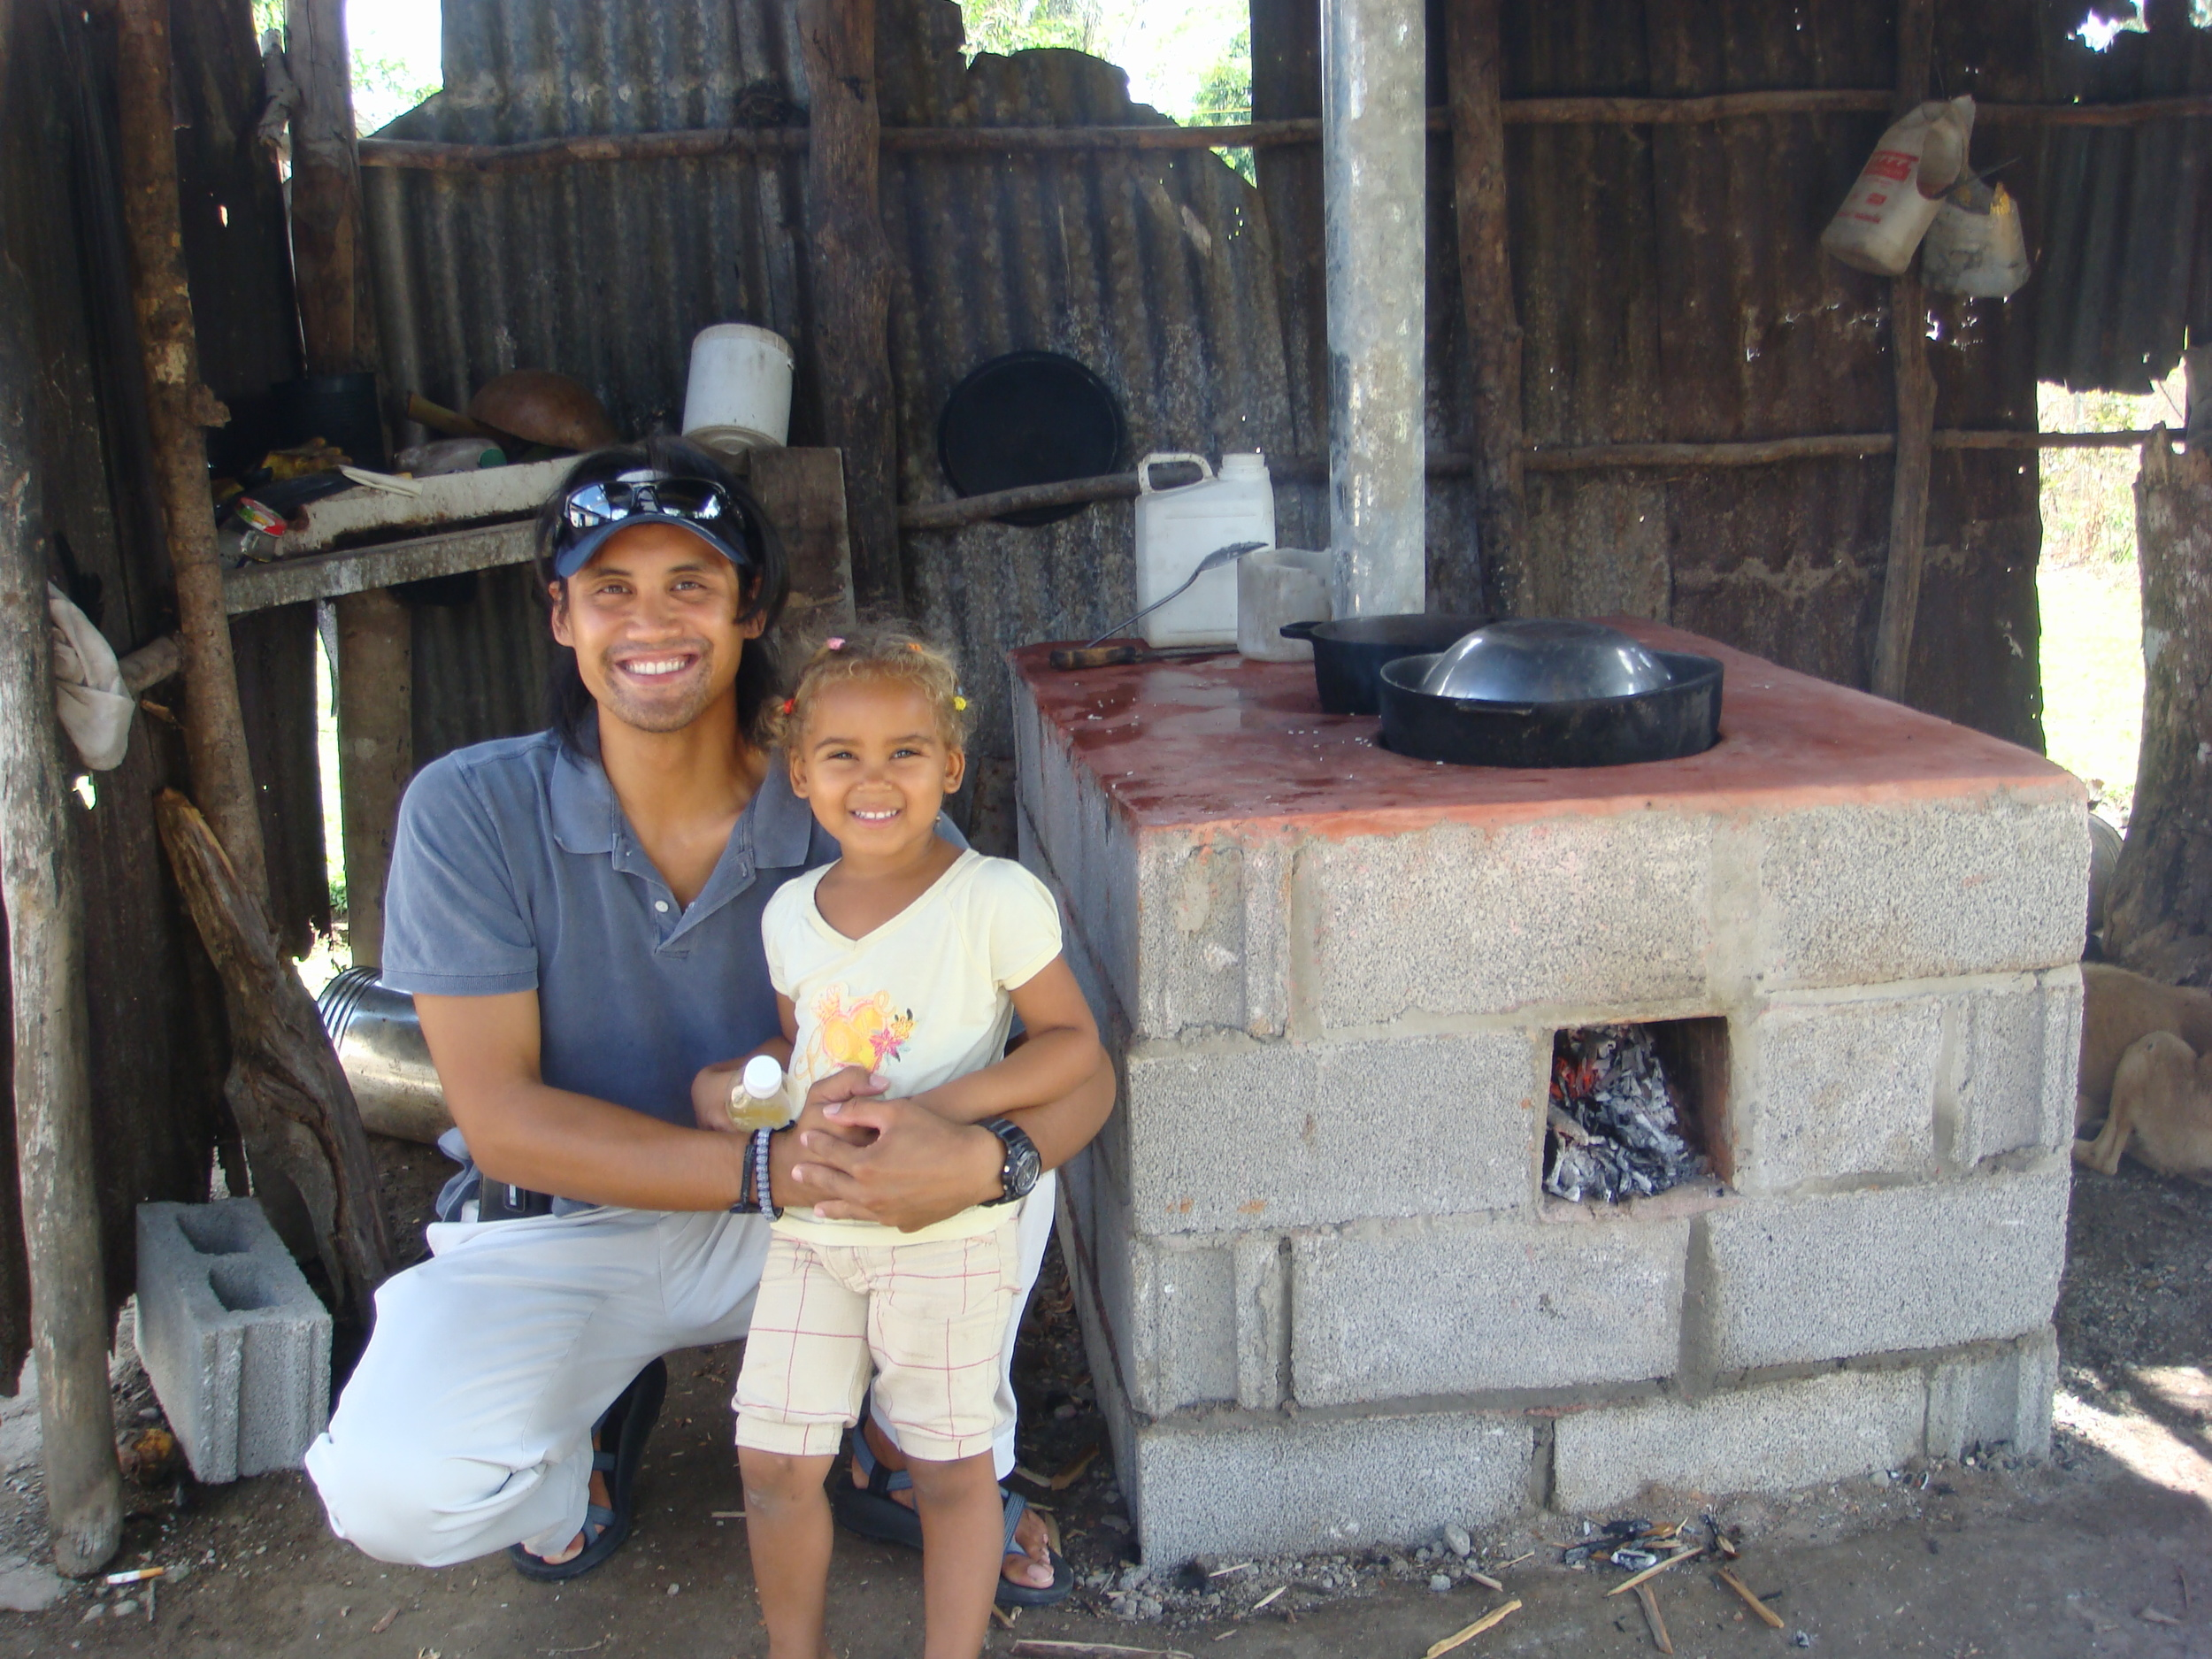 Justin with his neighbor's daughter next to a completed energy efficient stove.